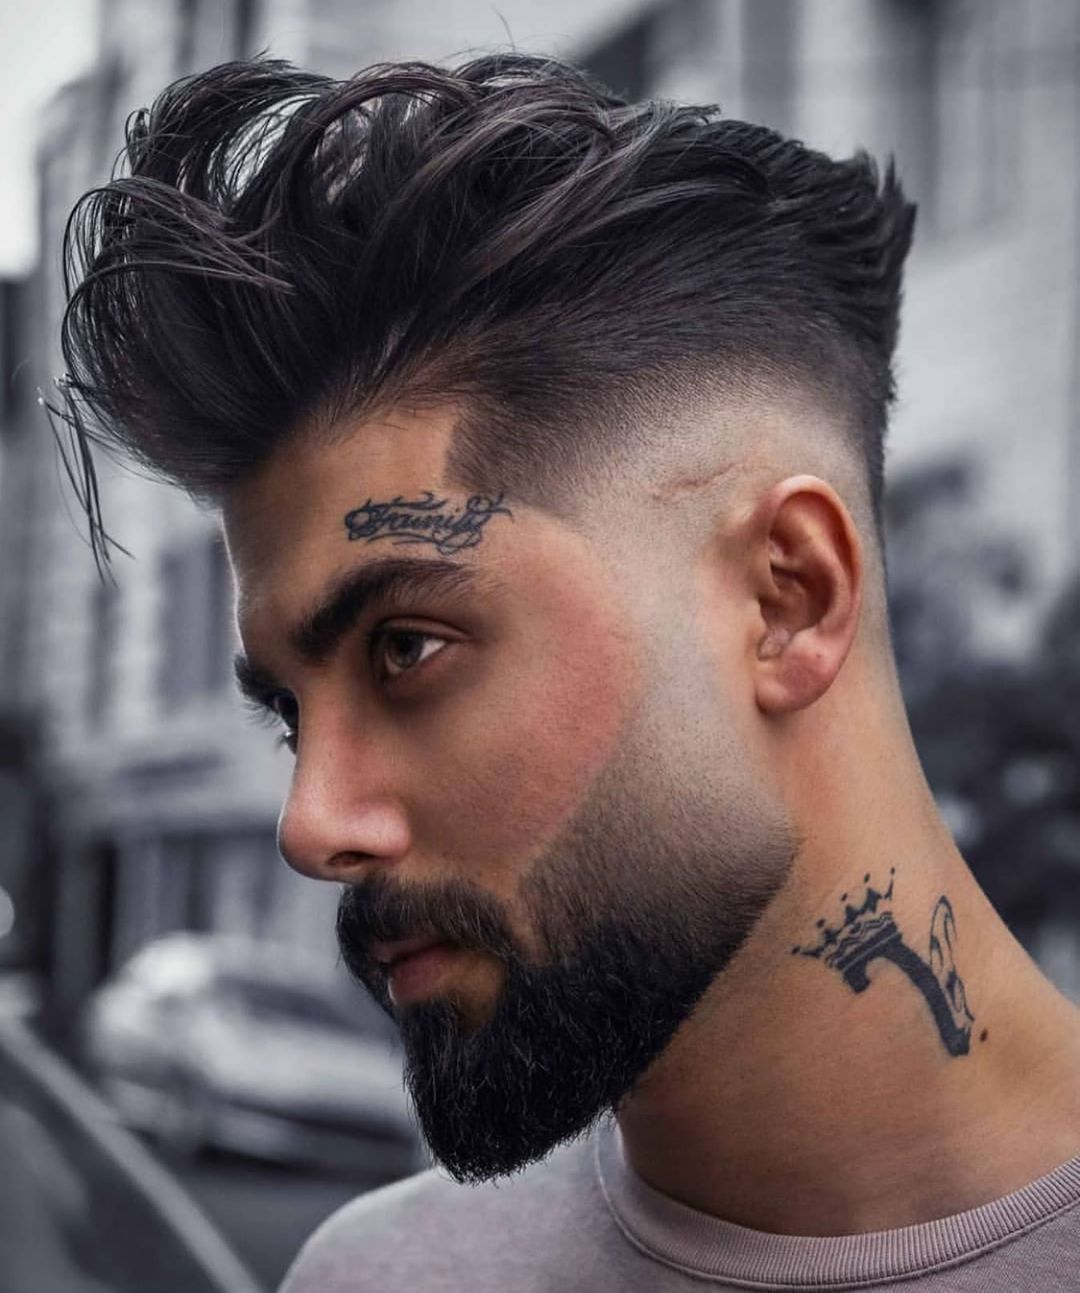 The Barber Post On Instagram Thebarberpost Presents To You Abbas Ahmadifard With Thi Young Men Haircuts Young Mens Hairstyles Mens Hairstyles